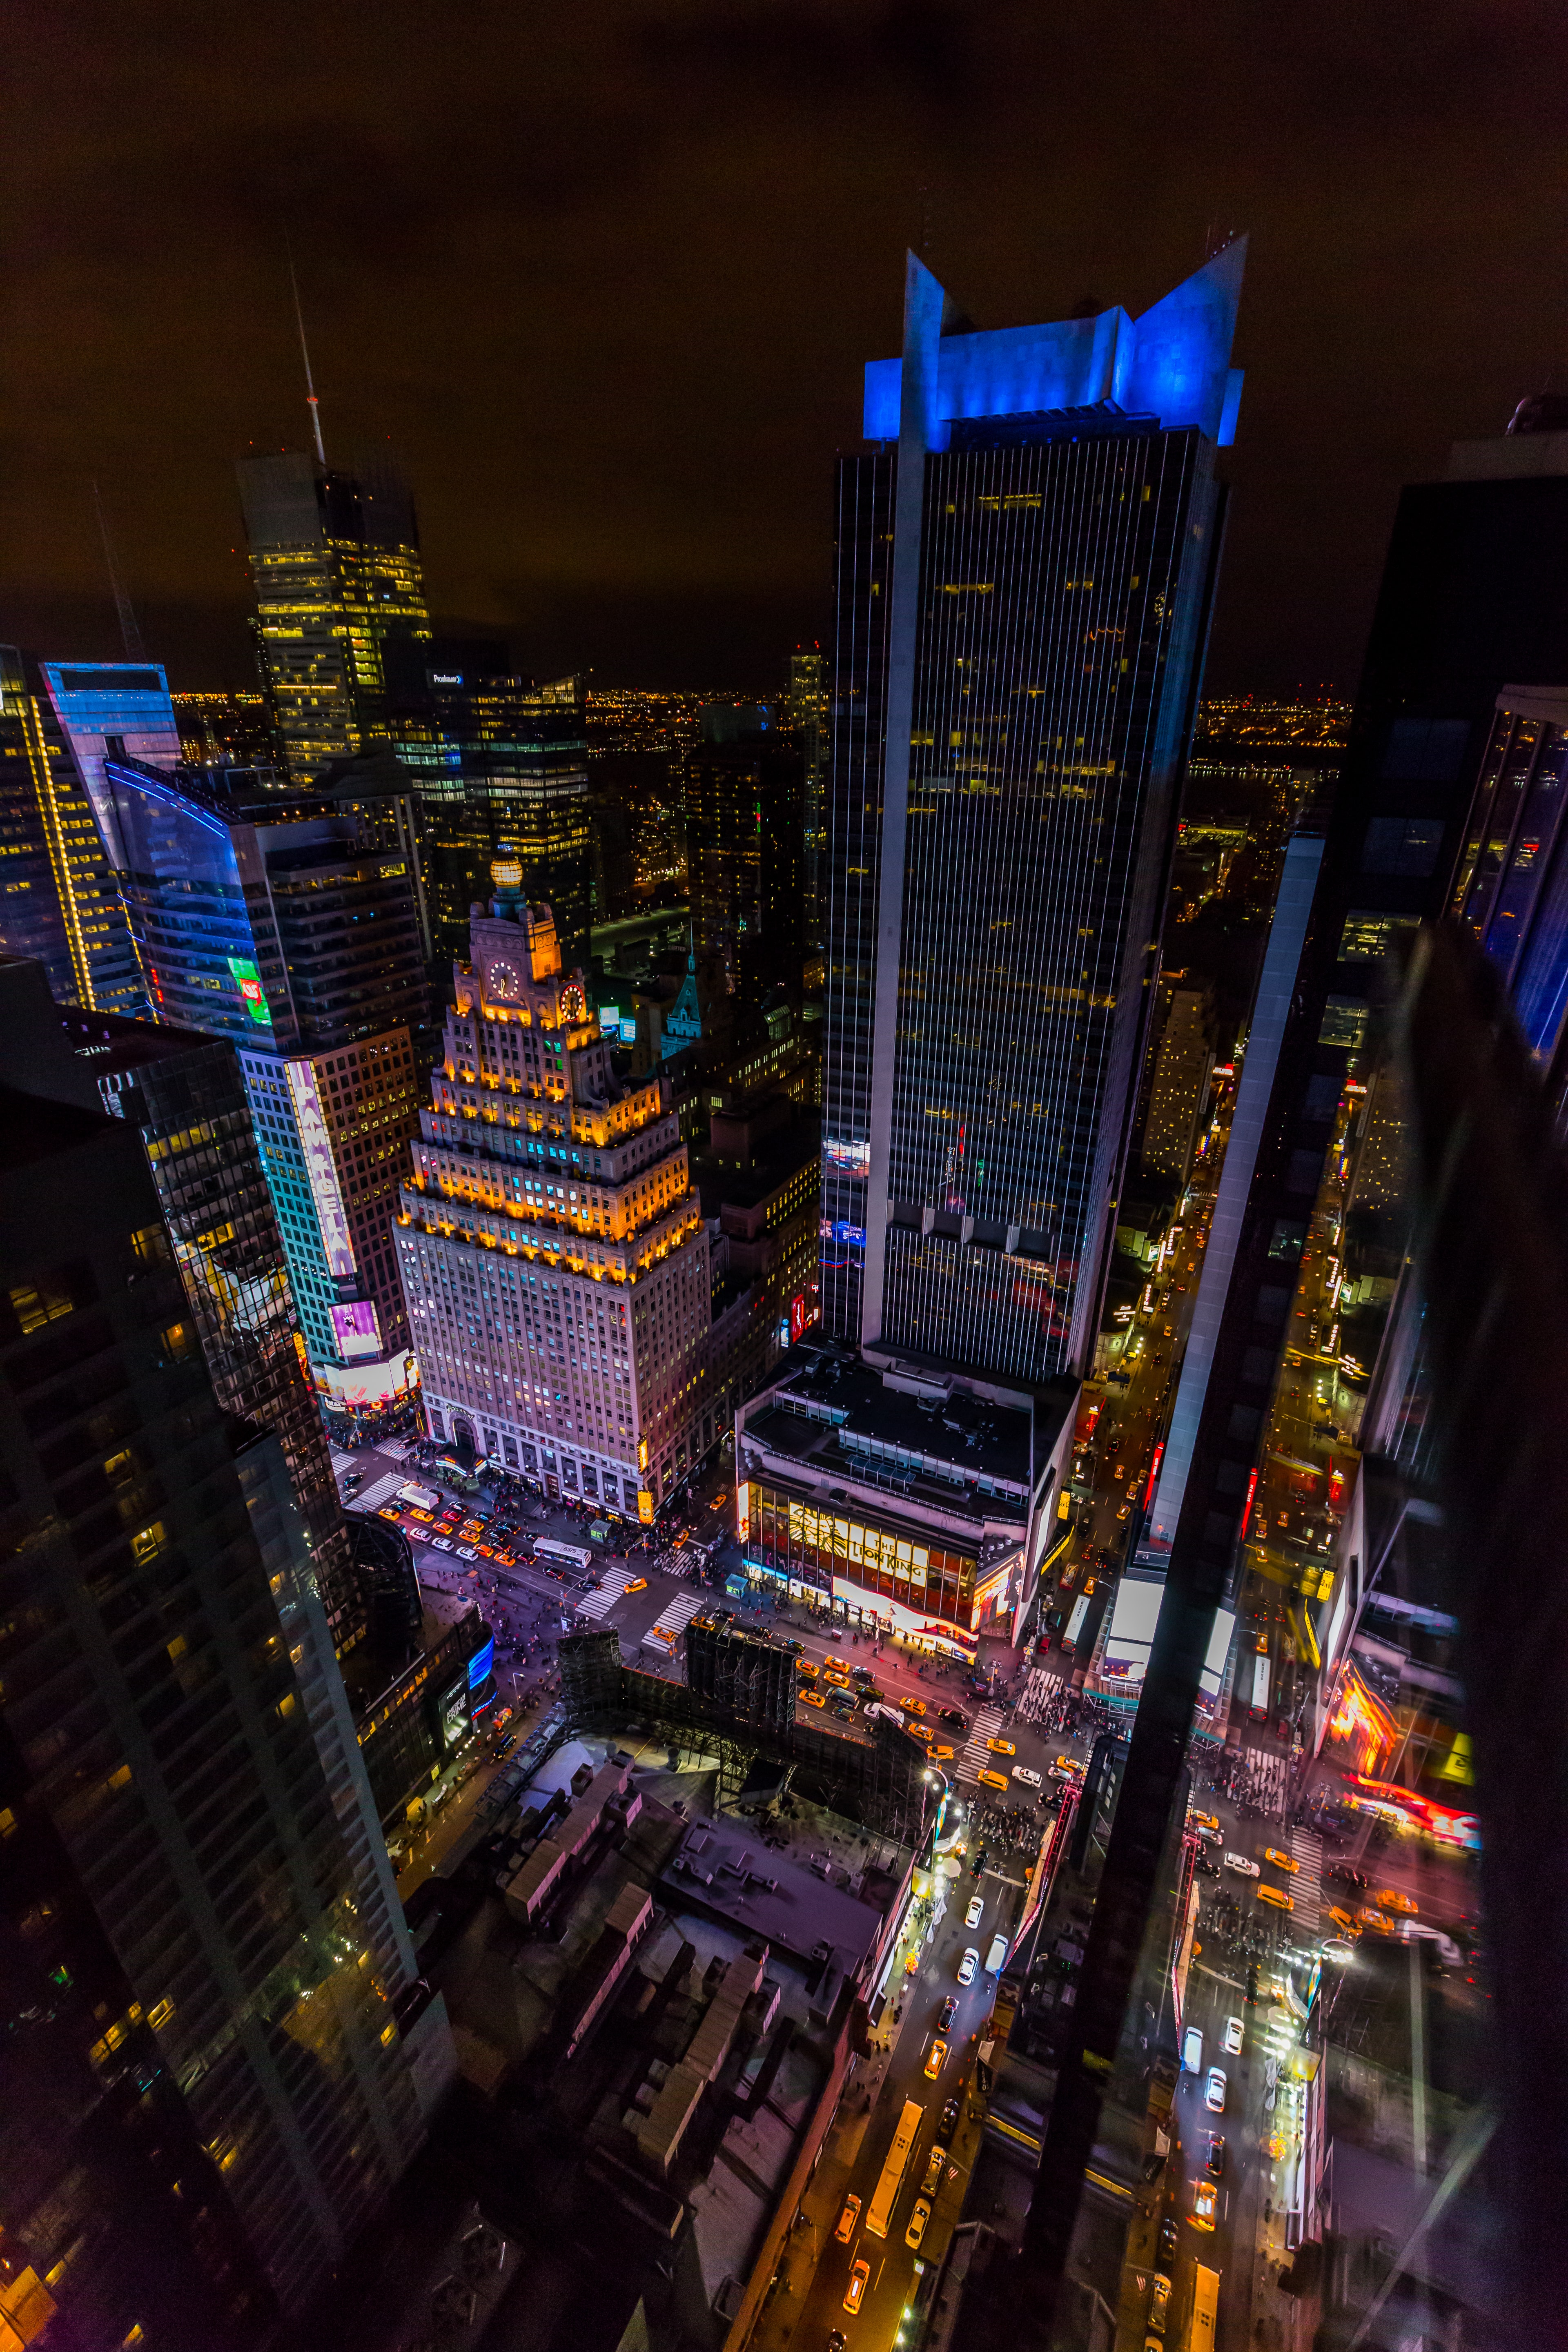 A high shot of neon-soaked skyscrapers in New York at night